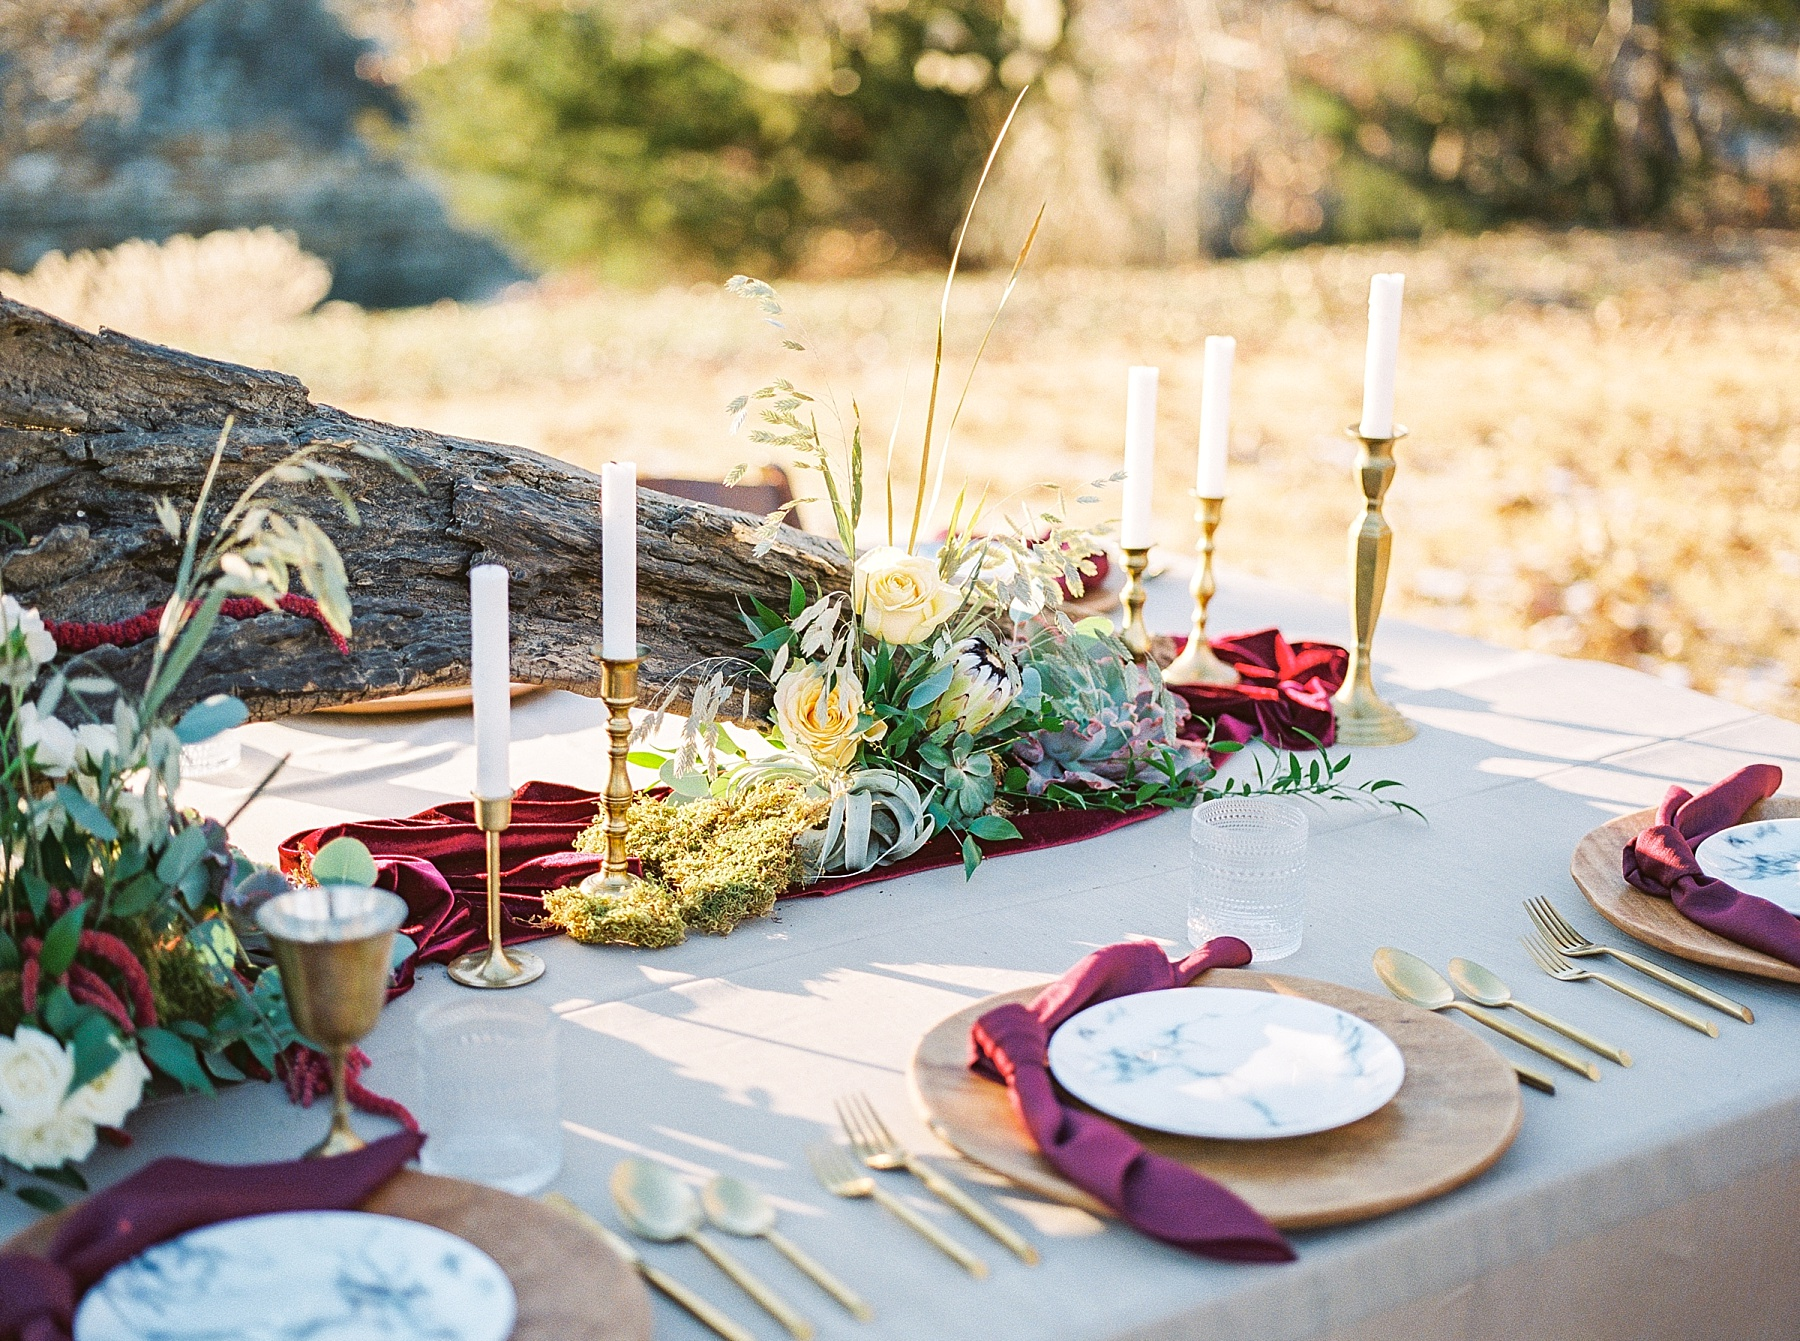 Snowy Winter Wedding at Wildcliff Events Lake With Earthy Jewel Tones and Organic Refined Style by Kelsi Kliethermes Photography Kansas City Missouri Wedding Photographer_0066.jpg